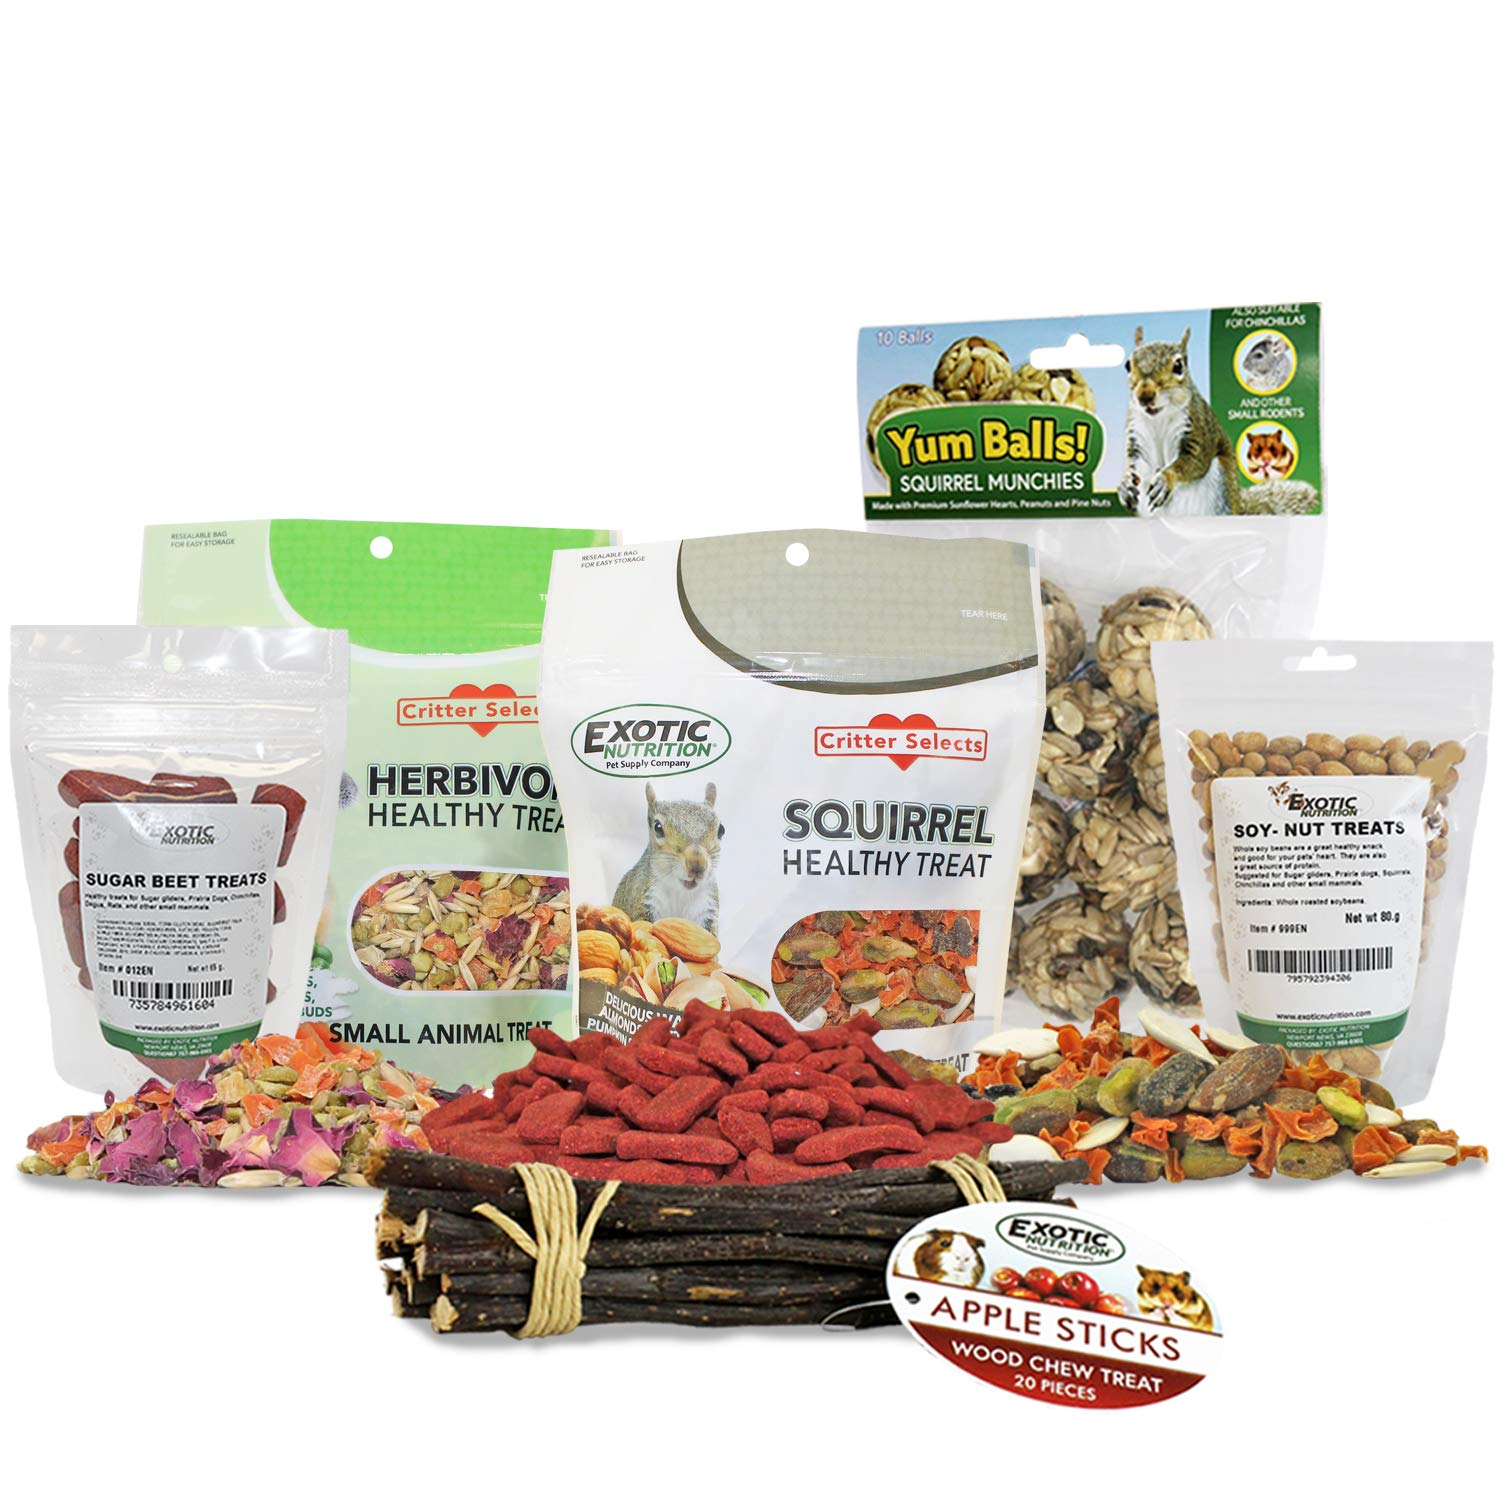 Squirrel Treat Bundle - Natural Healthy Assortment - Fruits, Veggies, Nuts, Seeds & Chews - Flying Squirrels, Ground Squirrels, Tree Squirrels, Chipmunks, Groundhogs, Prairie Dogs & Other Rodents by Exotic Nutrition